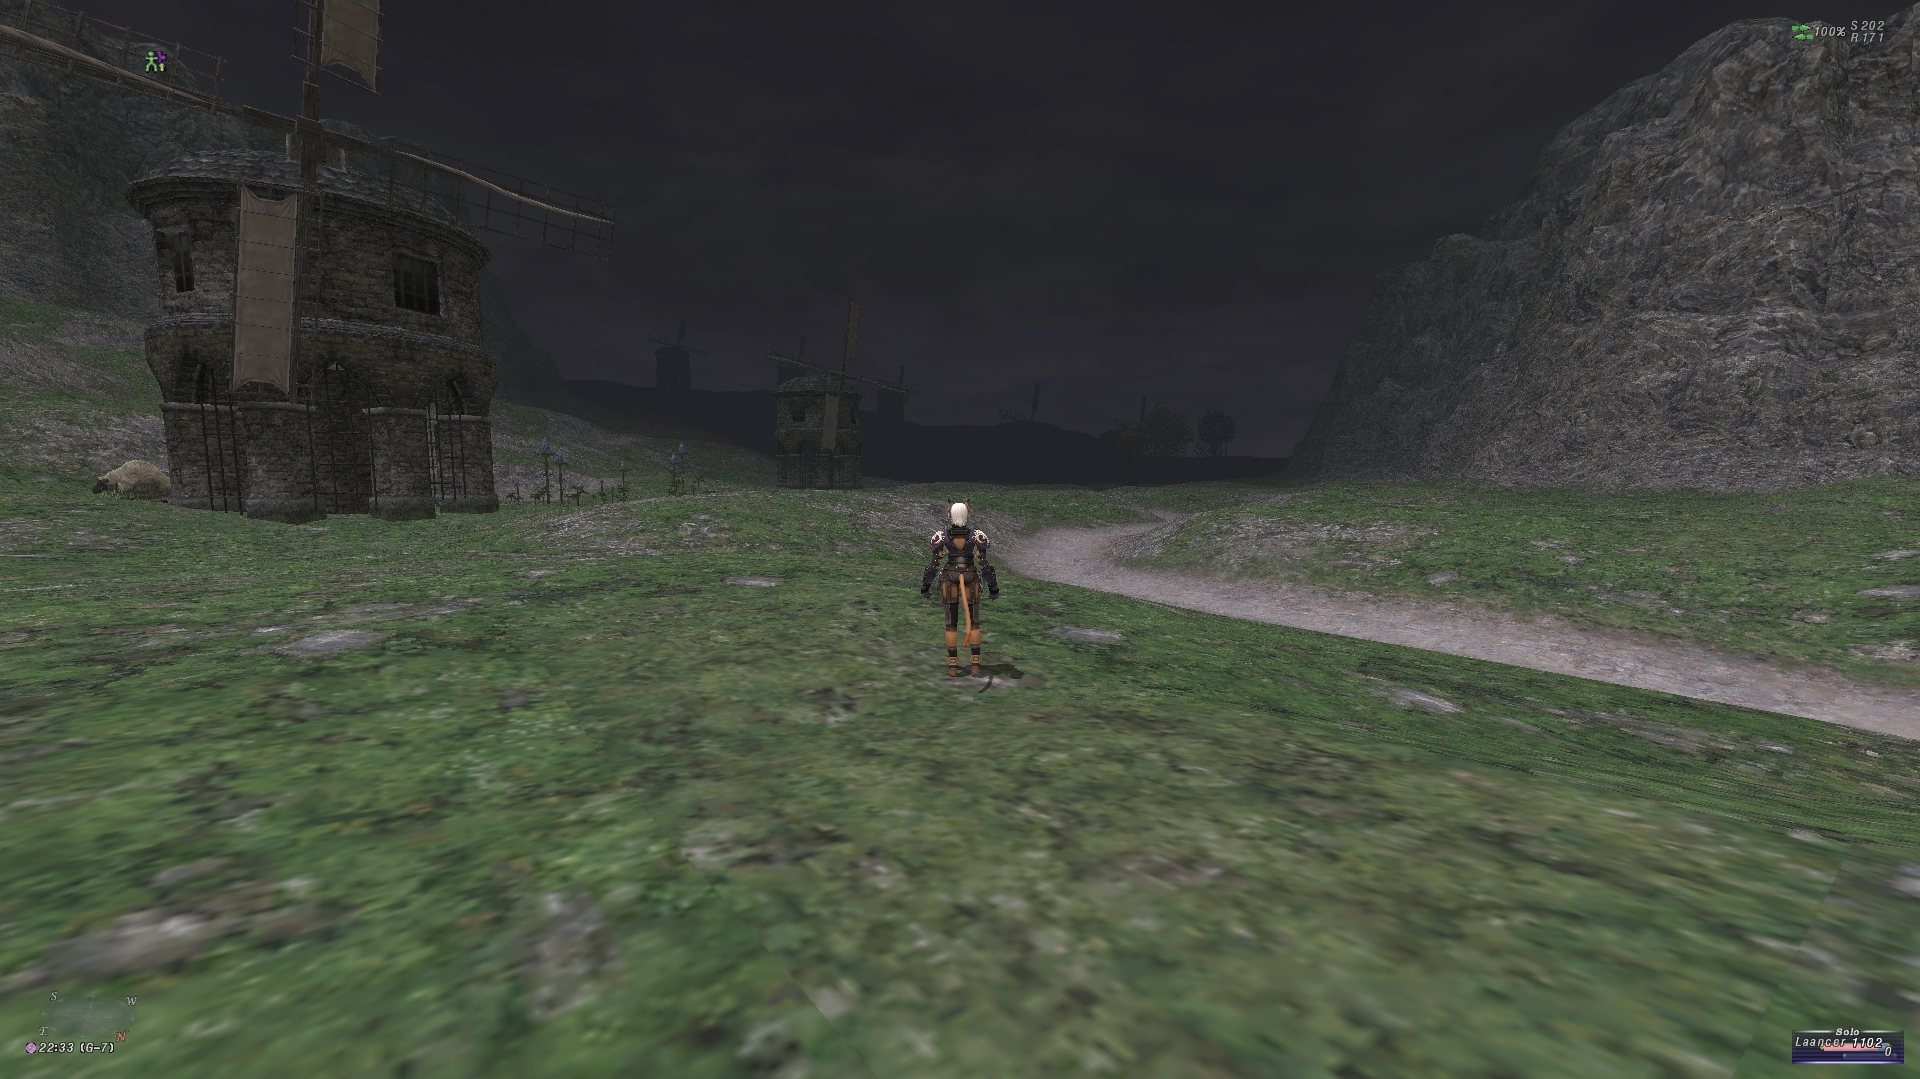 videogame character stands with back to camera. Decrepit windmills occupy the midground and background.